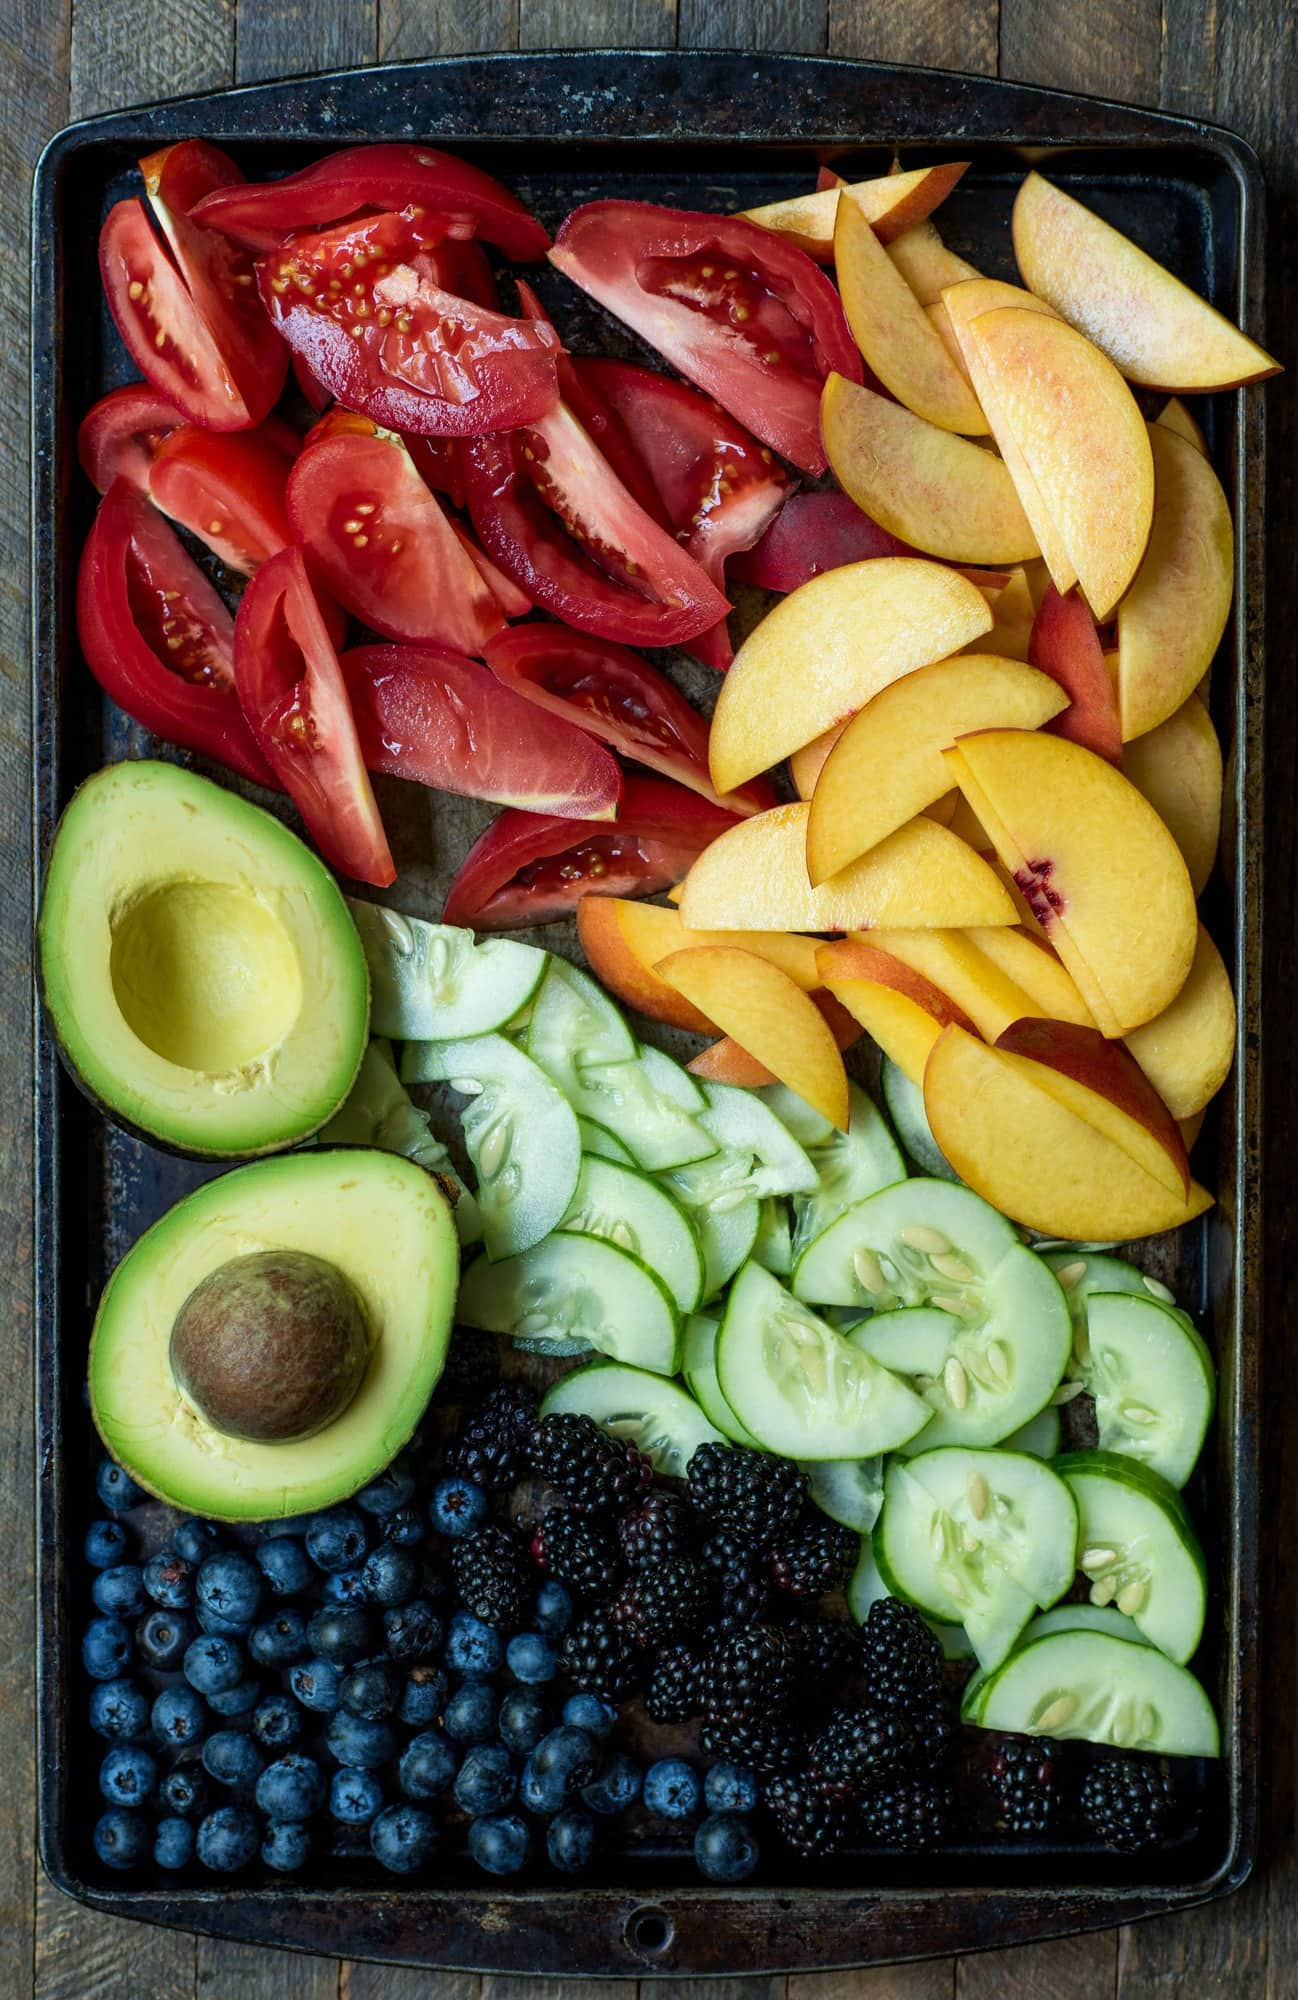 Sheet pan filled with fresh sliced tomatoes, sliced peaches, an avocado, cucumber and blueberries